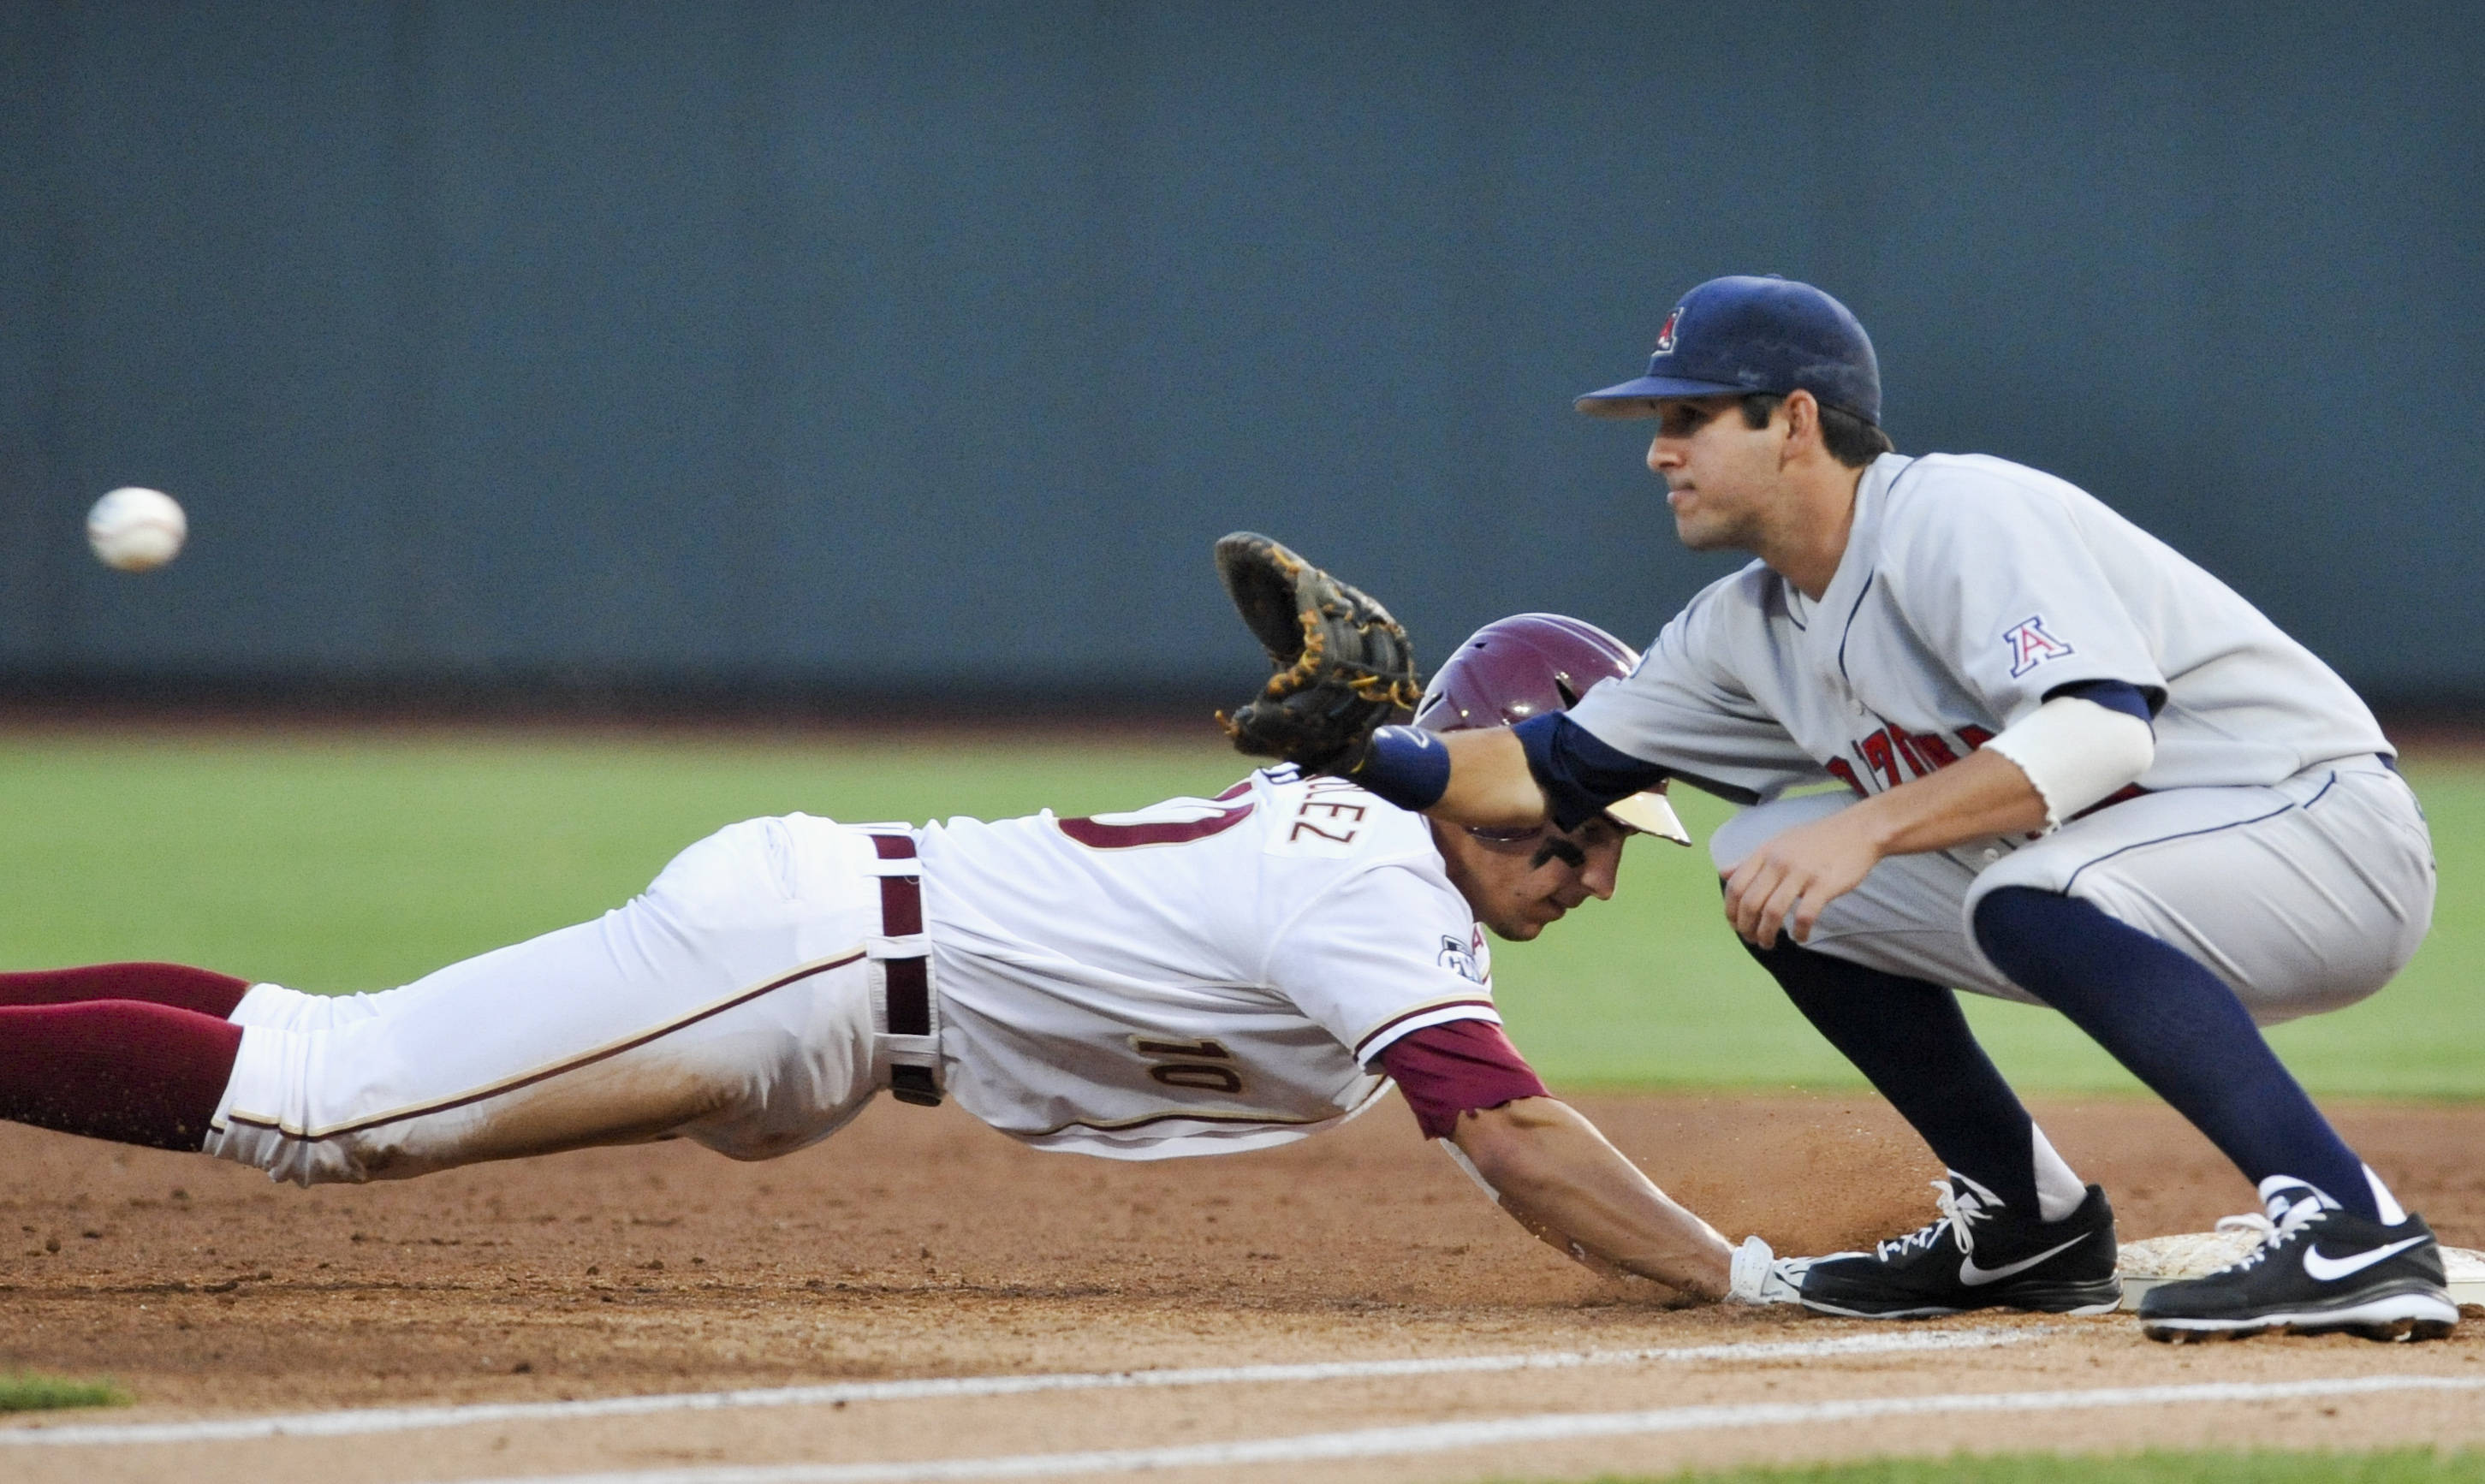 Florida State's Justin Gonzalez returns safely to first as Arizona first baseman Joseph Maggi awaits the pick-off throw in the second inning. (AP Photo/Dave Weaver)